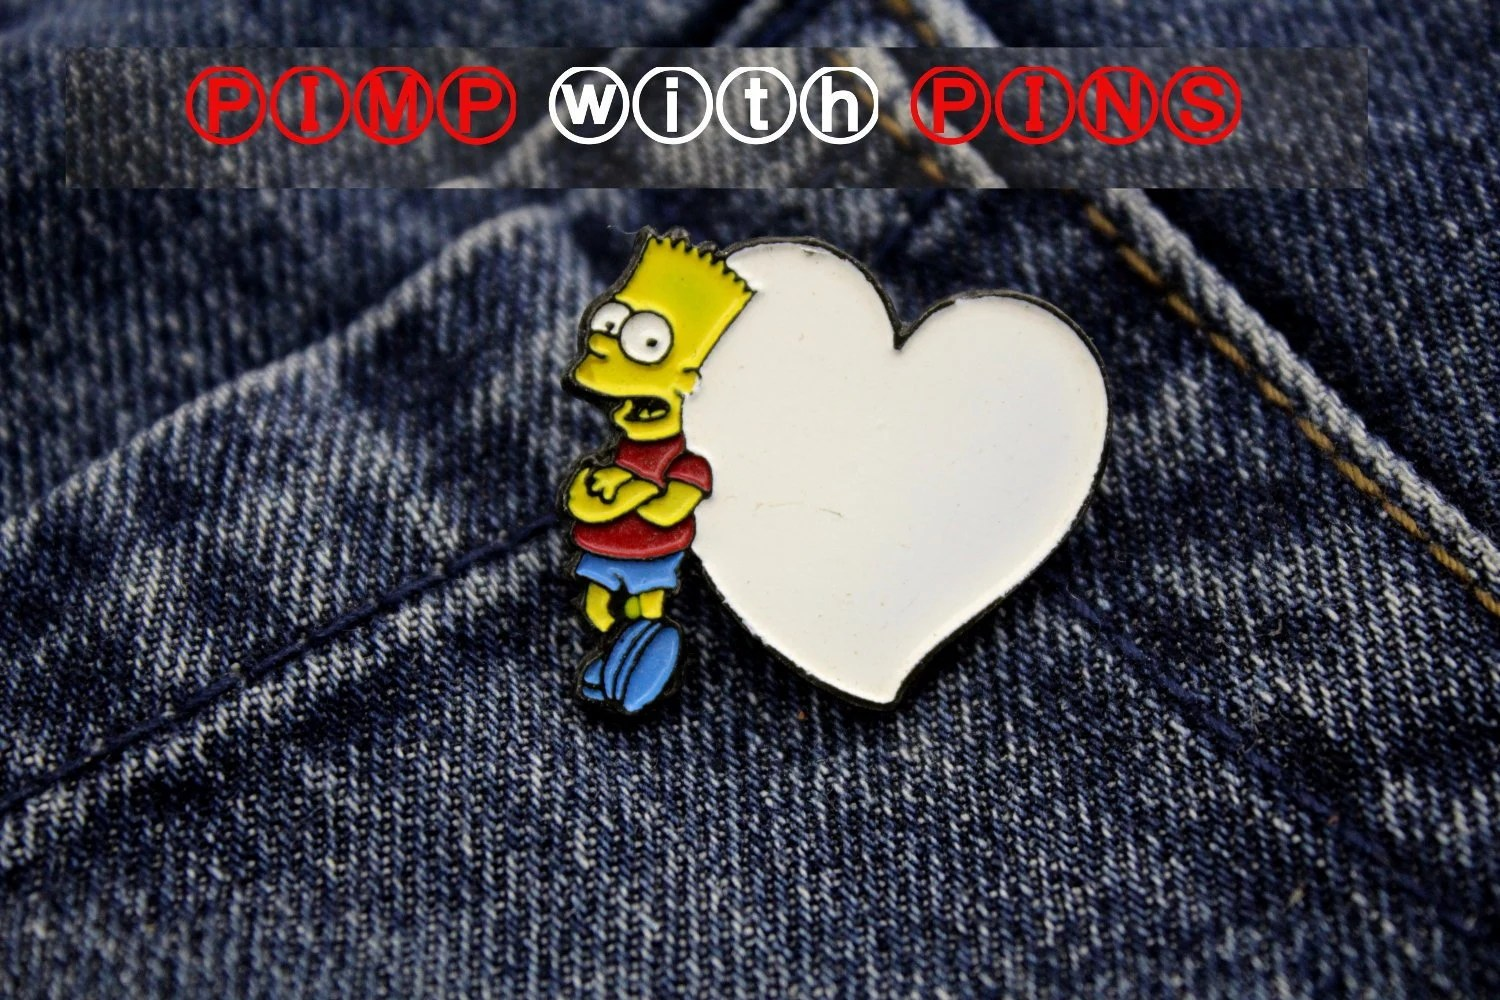 Pimp Je Bank Pimp With Pins The Simpsons Vintage Clothes Pins Patches Enamel Pin Brooch 50s 60s 70s 80s 90s Jewelry Pin